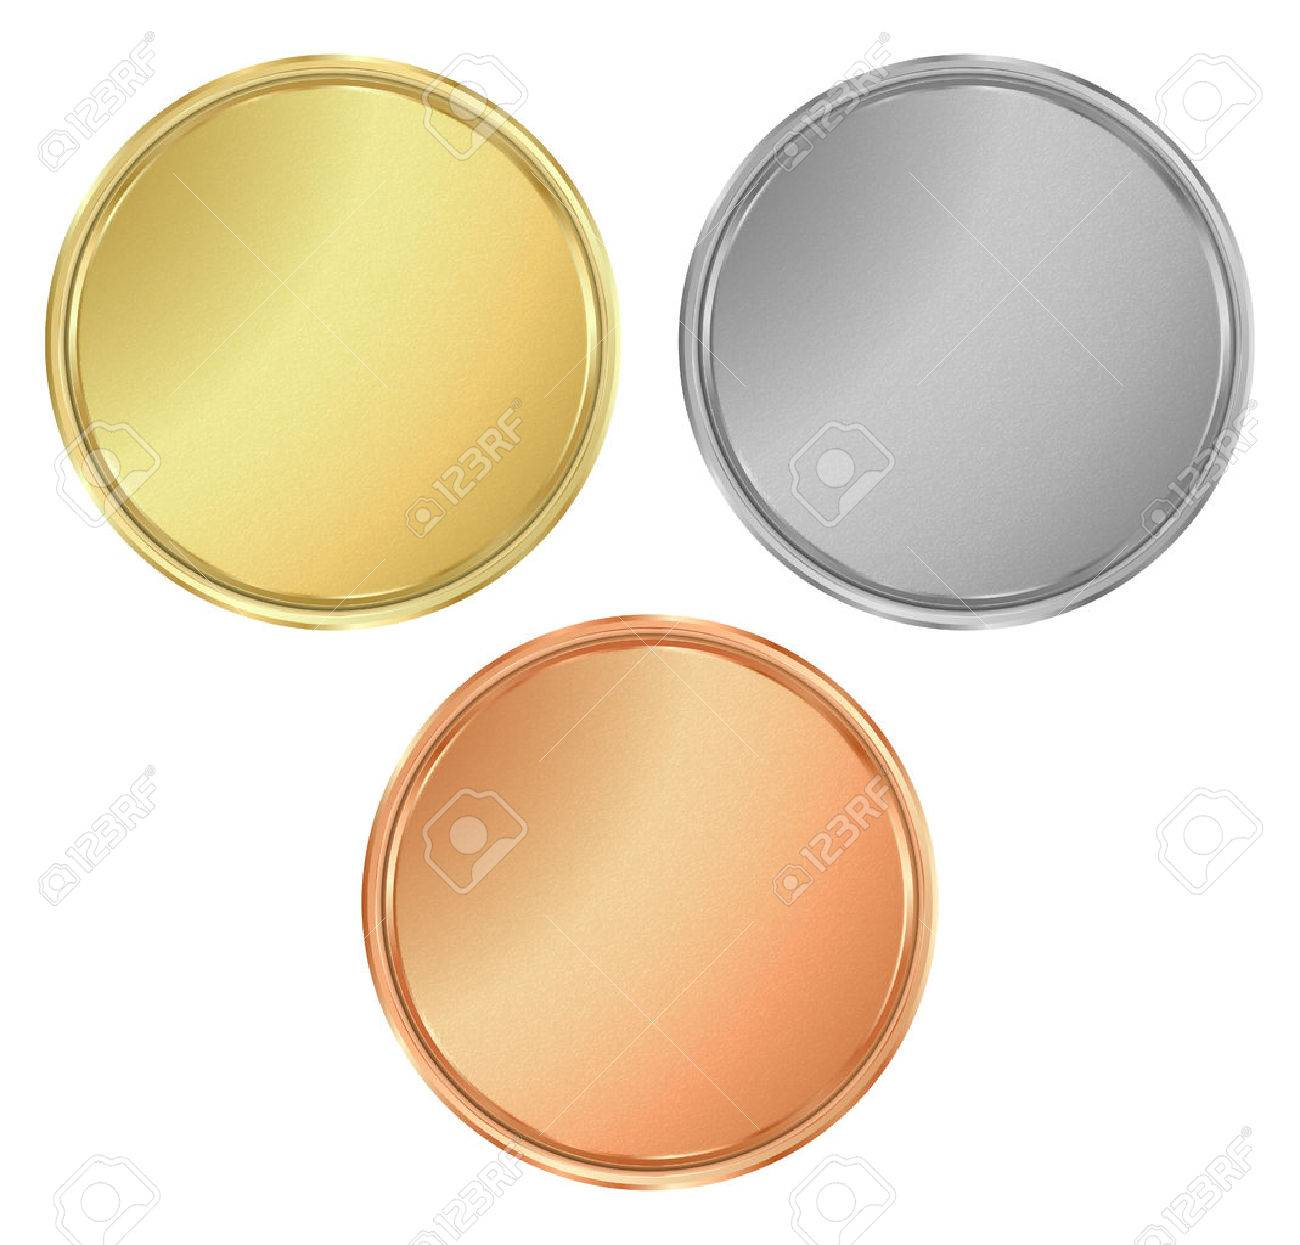 round empty textured gold silver bronze medals. It can be used as a coin button icons - 58385498